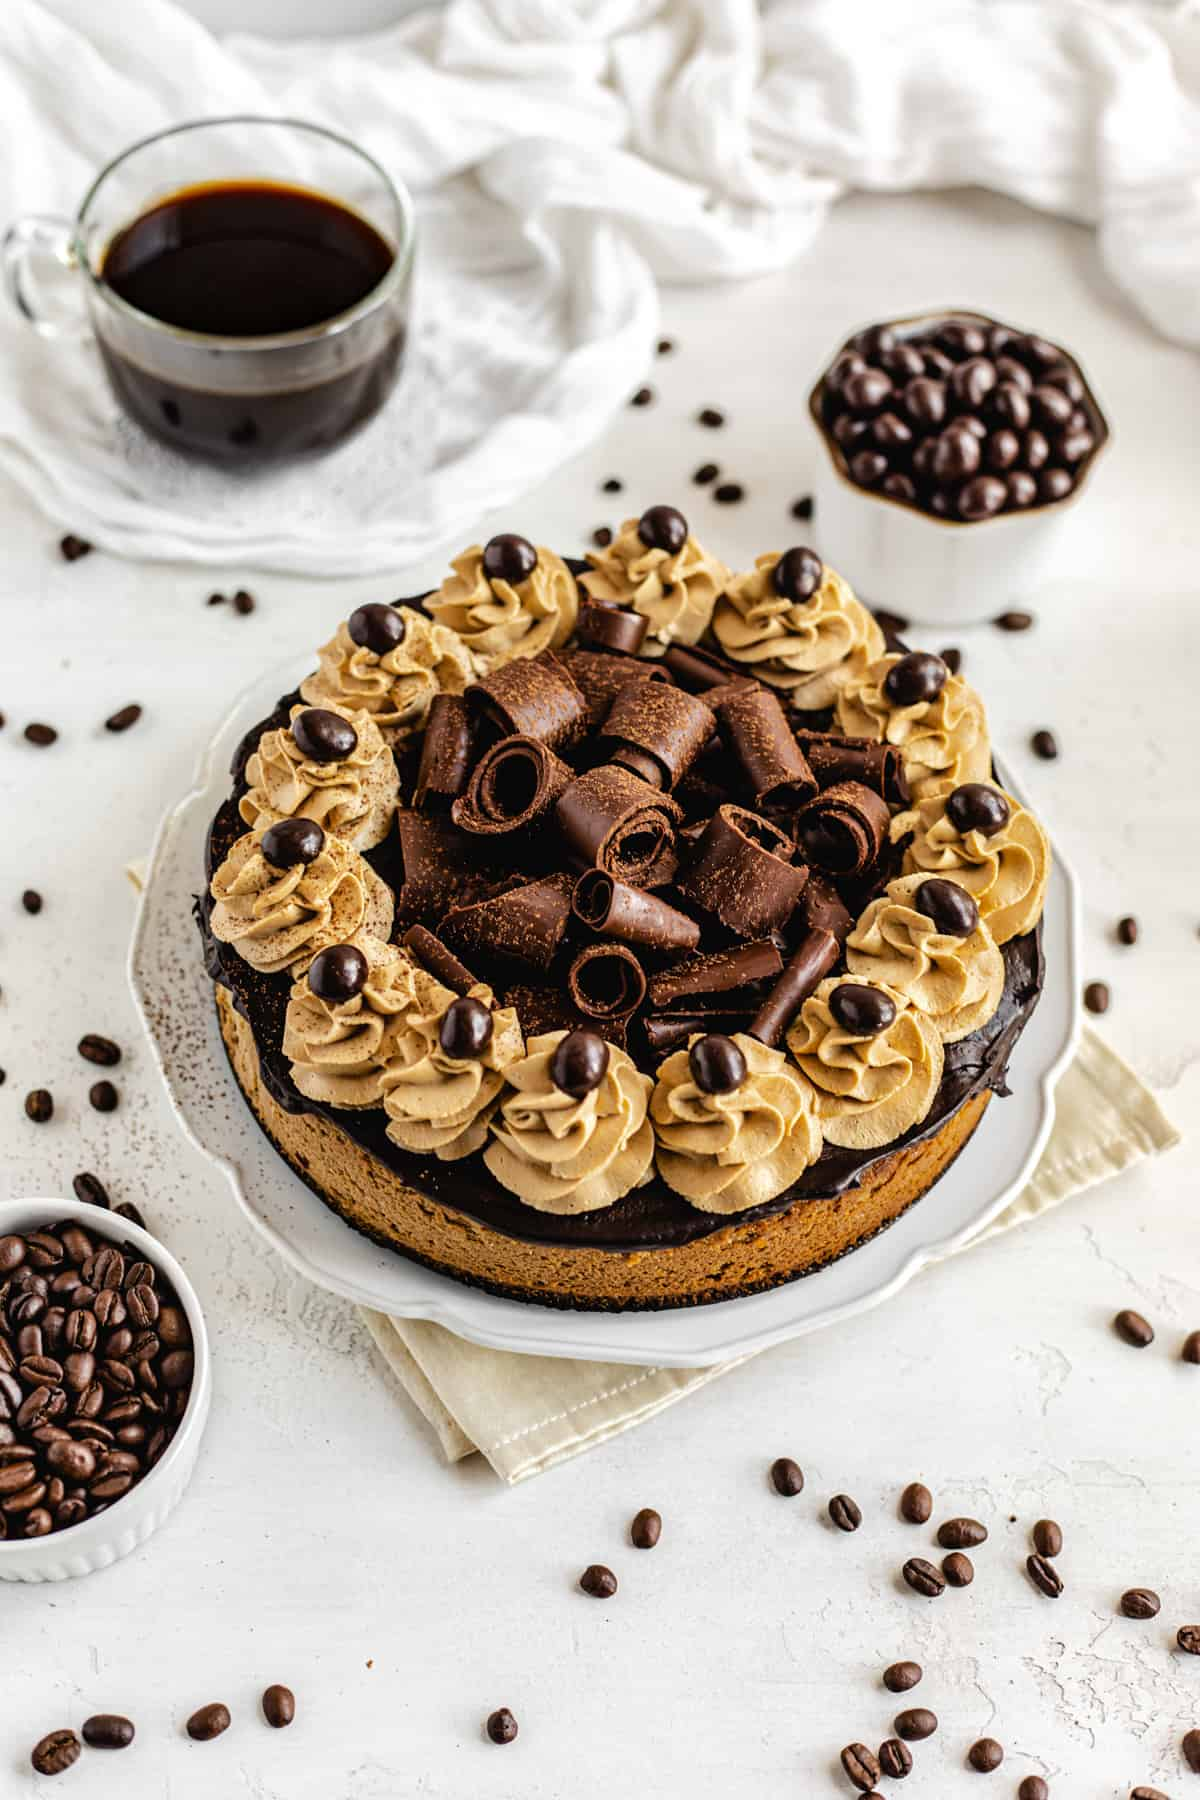 cheesecake on a white platter surrounded by coffee and coffee beans